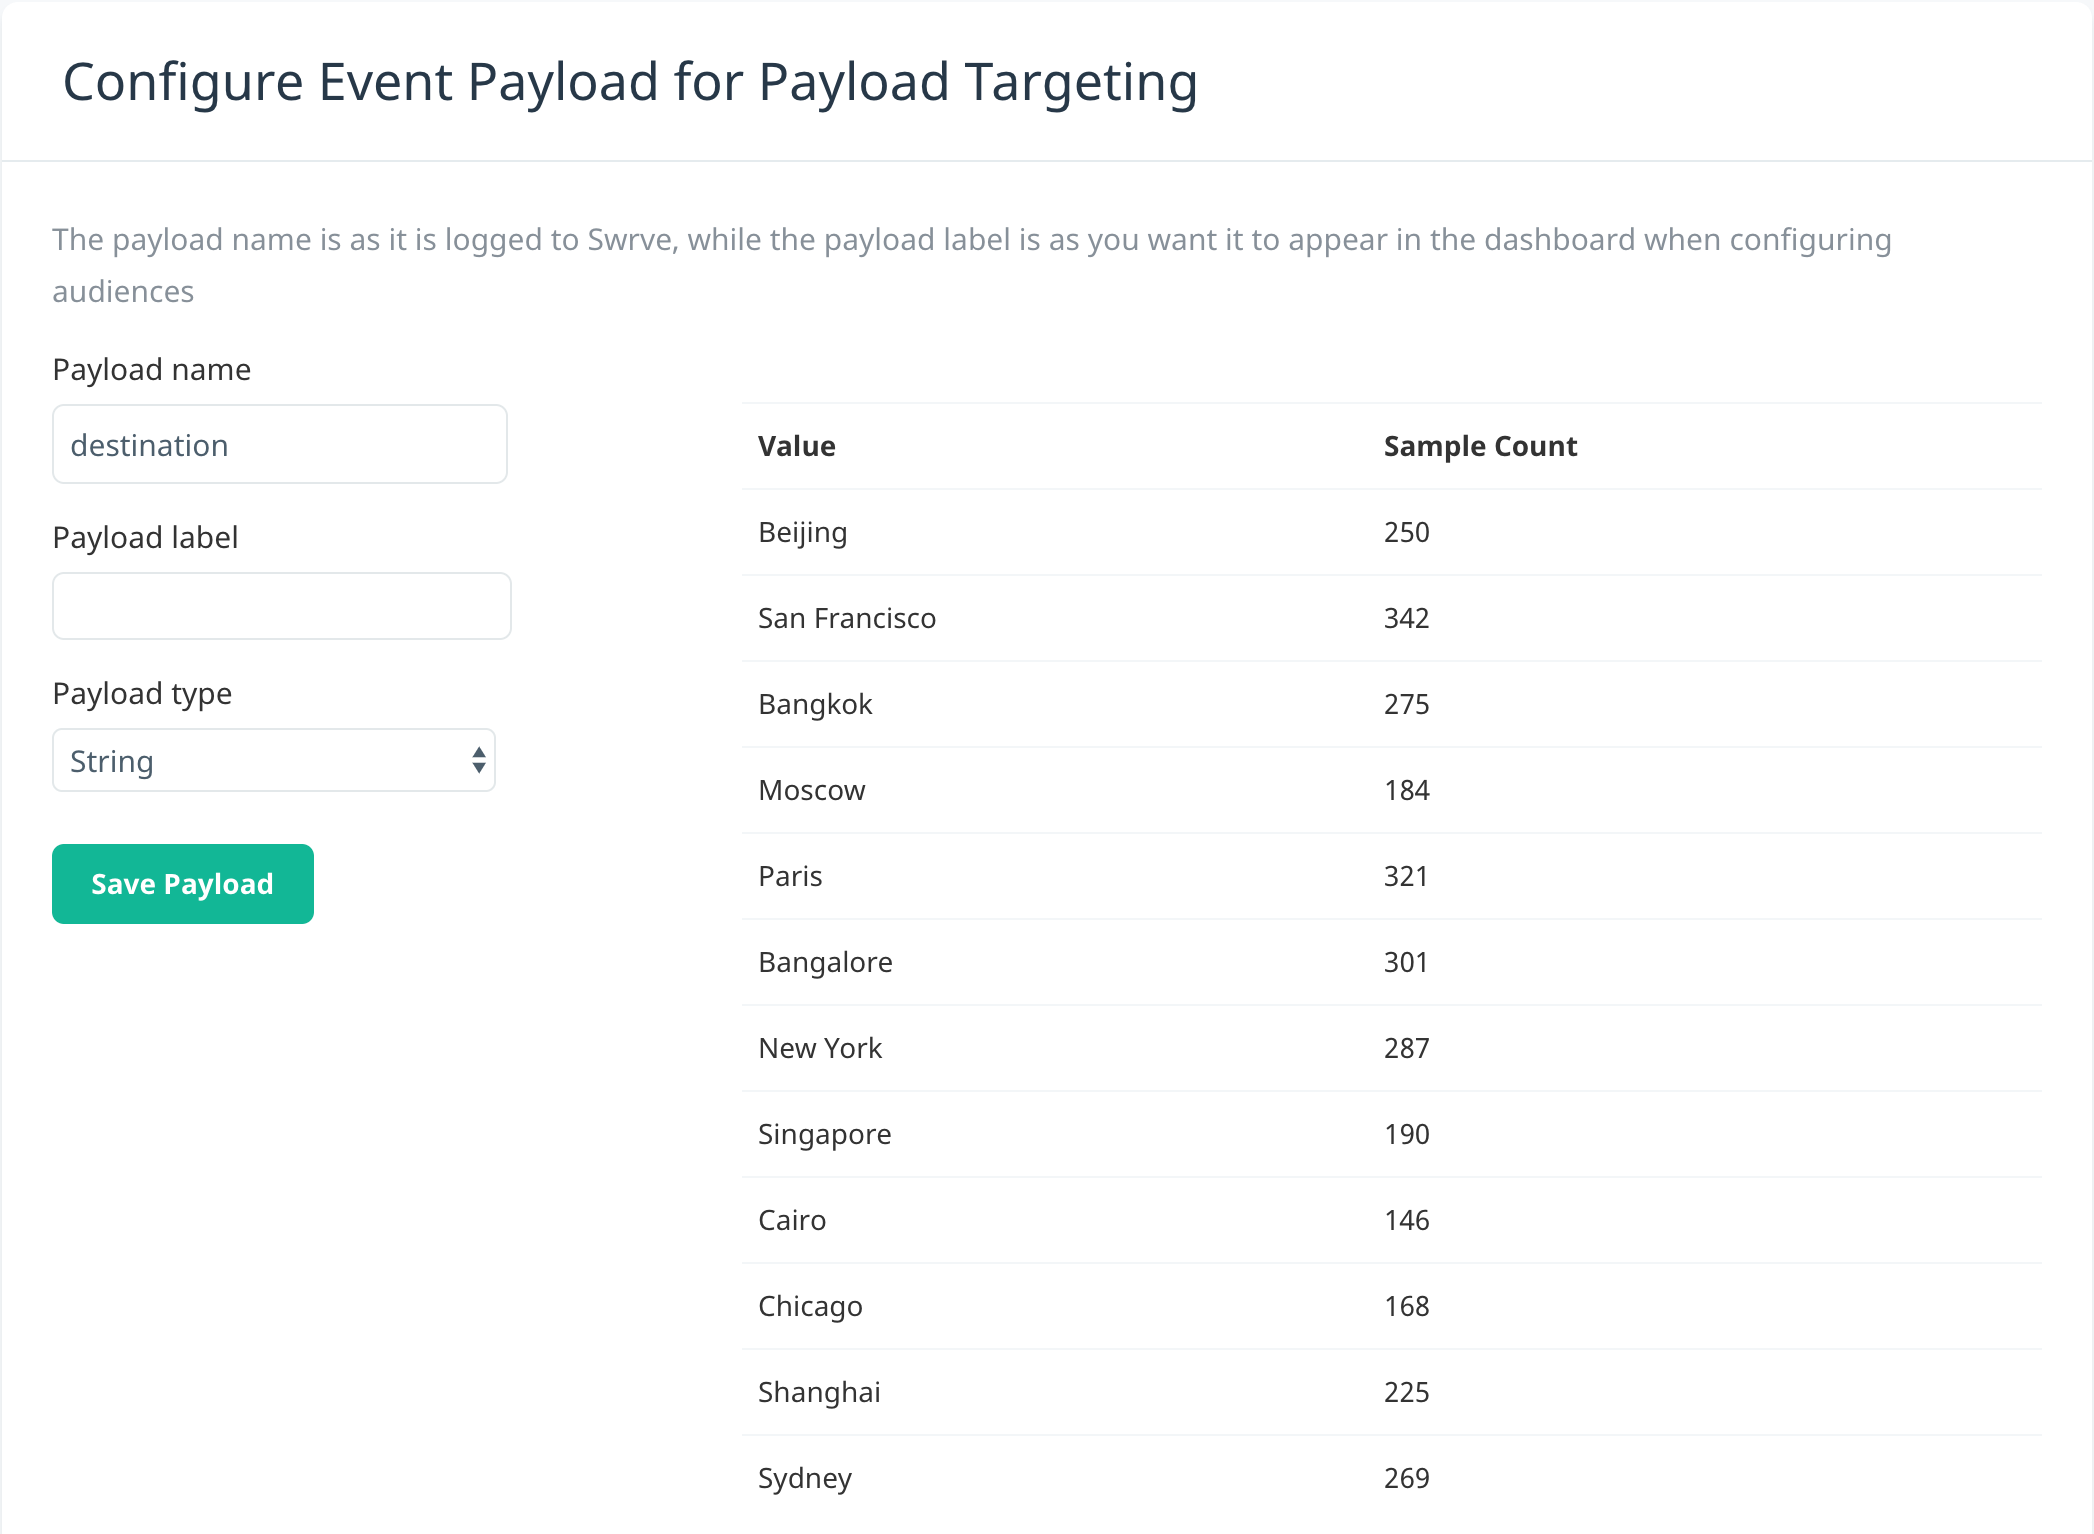 Event payloads table of values